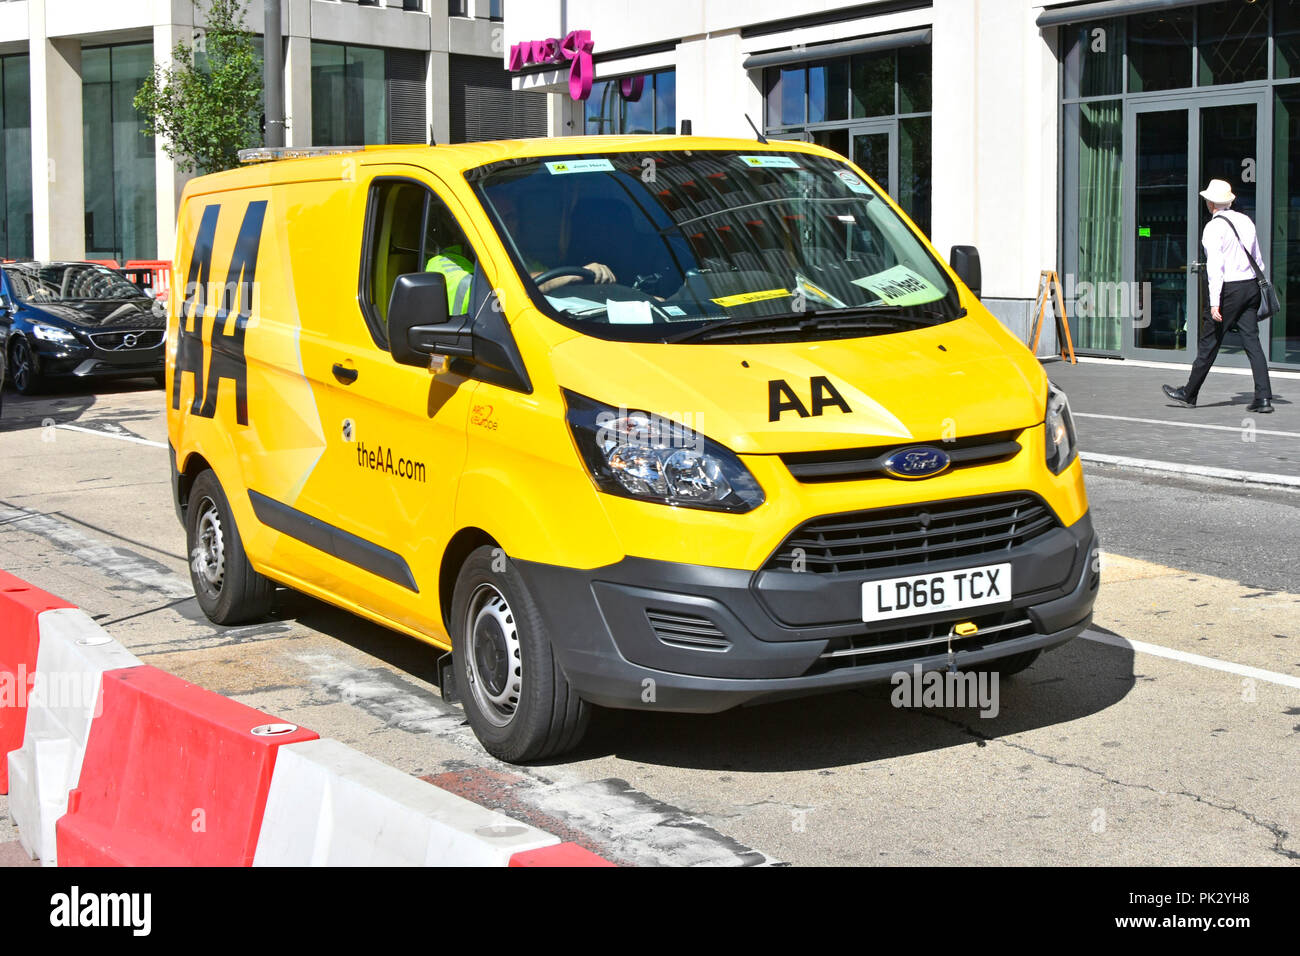 e7fb59602f Ford Transit van   driver with AA logo on yellow breakdown van driving  along town centre